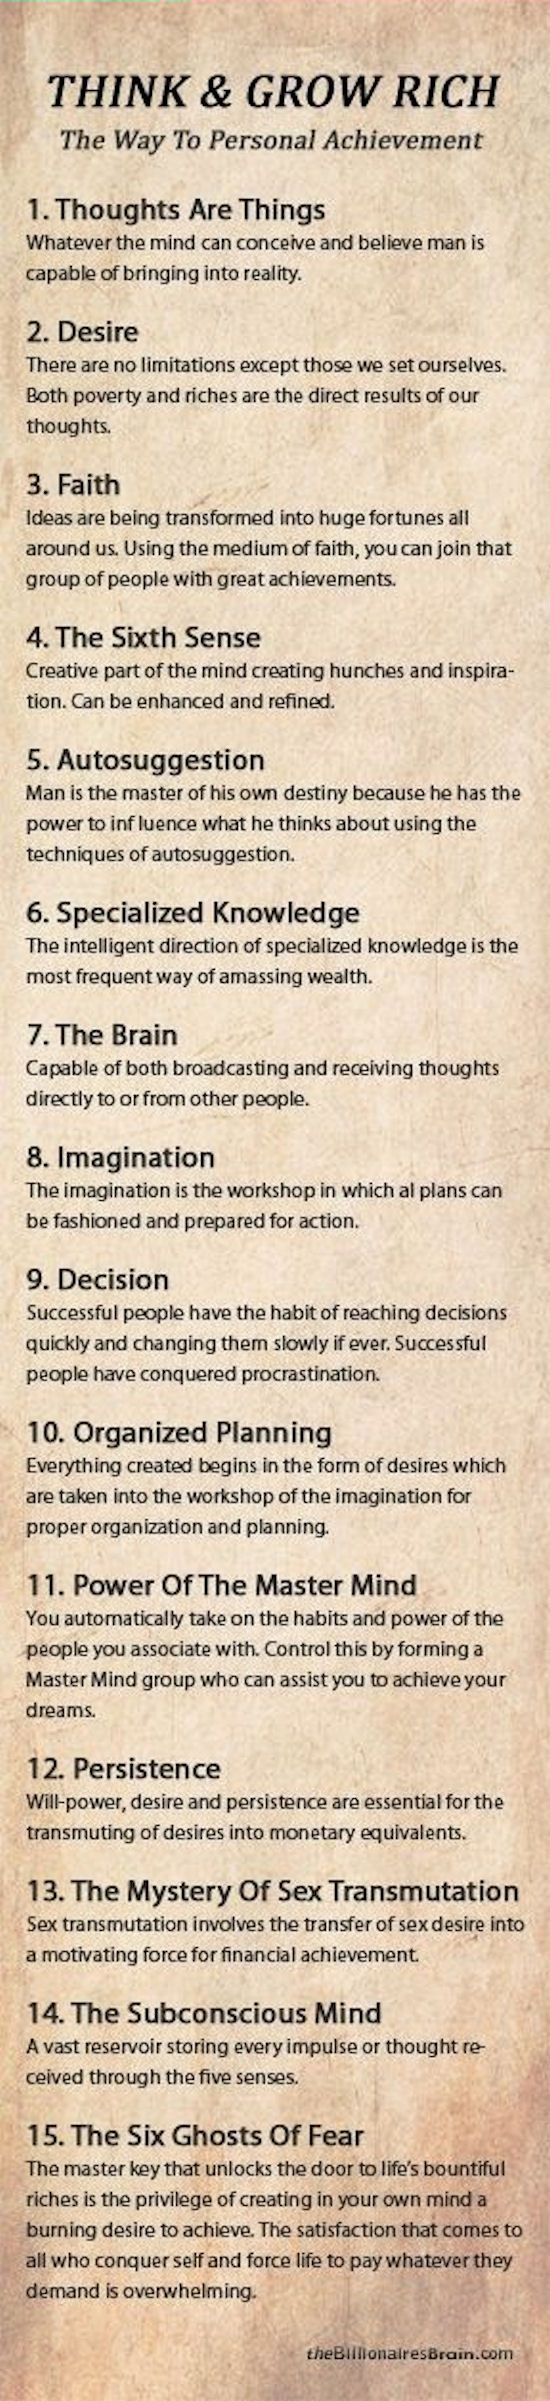 worksheet Think And Grow Rich Worksheet think and grow rich the way to personal achievement thoughts success business infographic self improvement